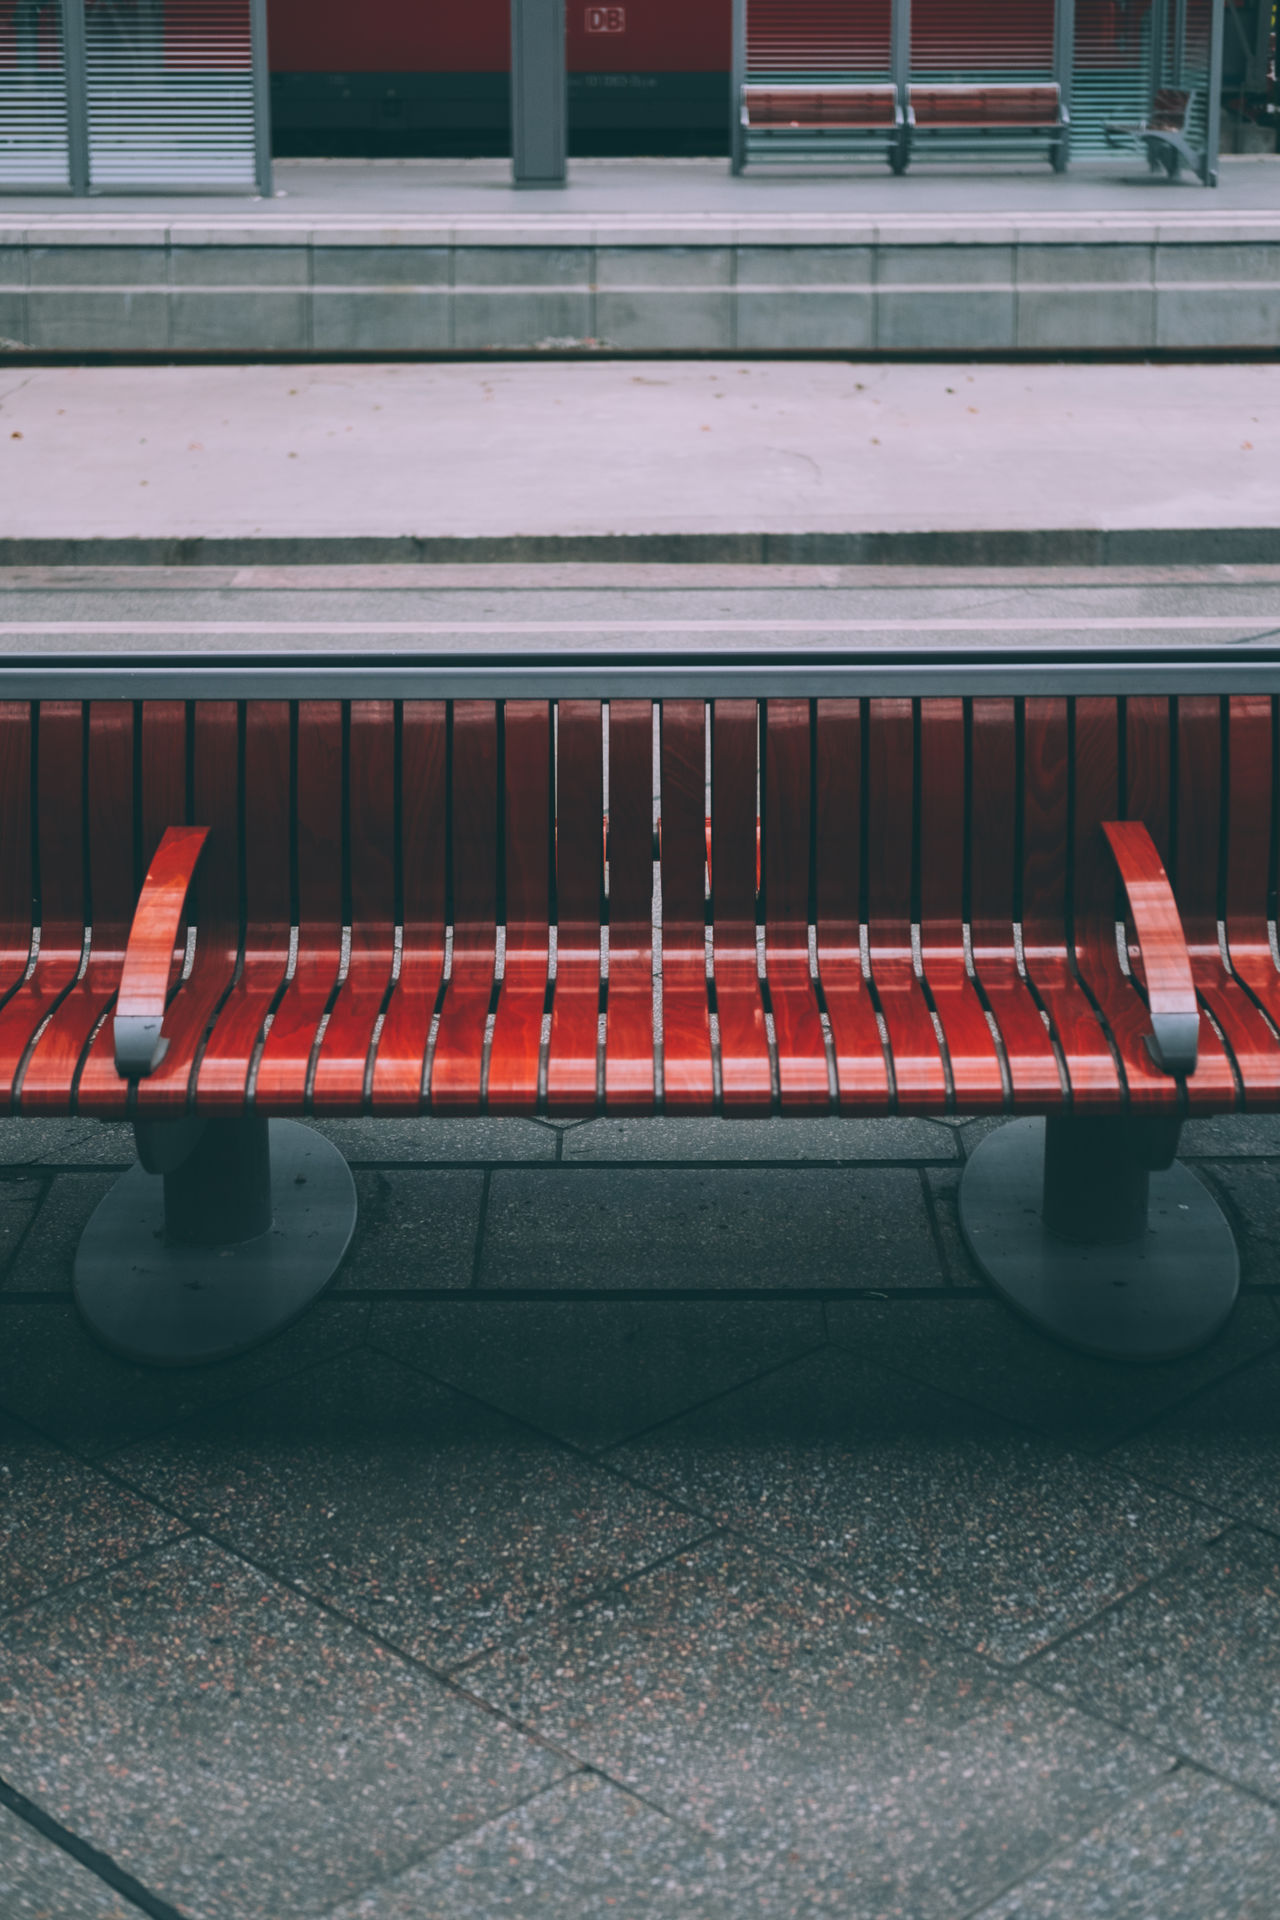 bench Bench Day No People Outdoors Red Shadows Trainstation Waiting